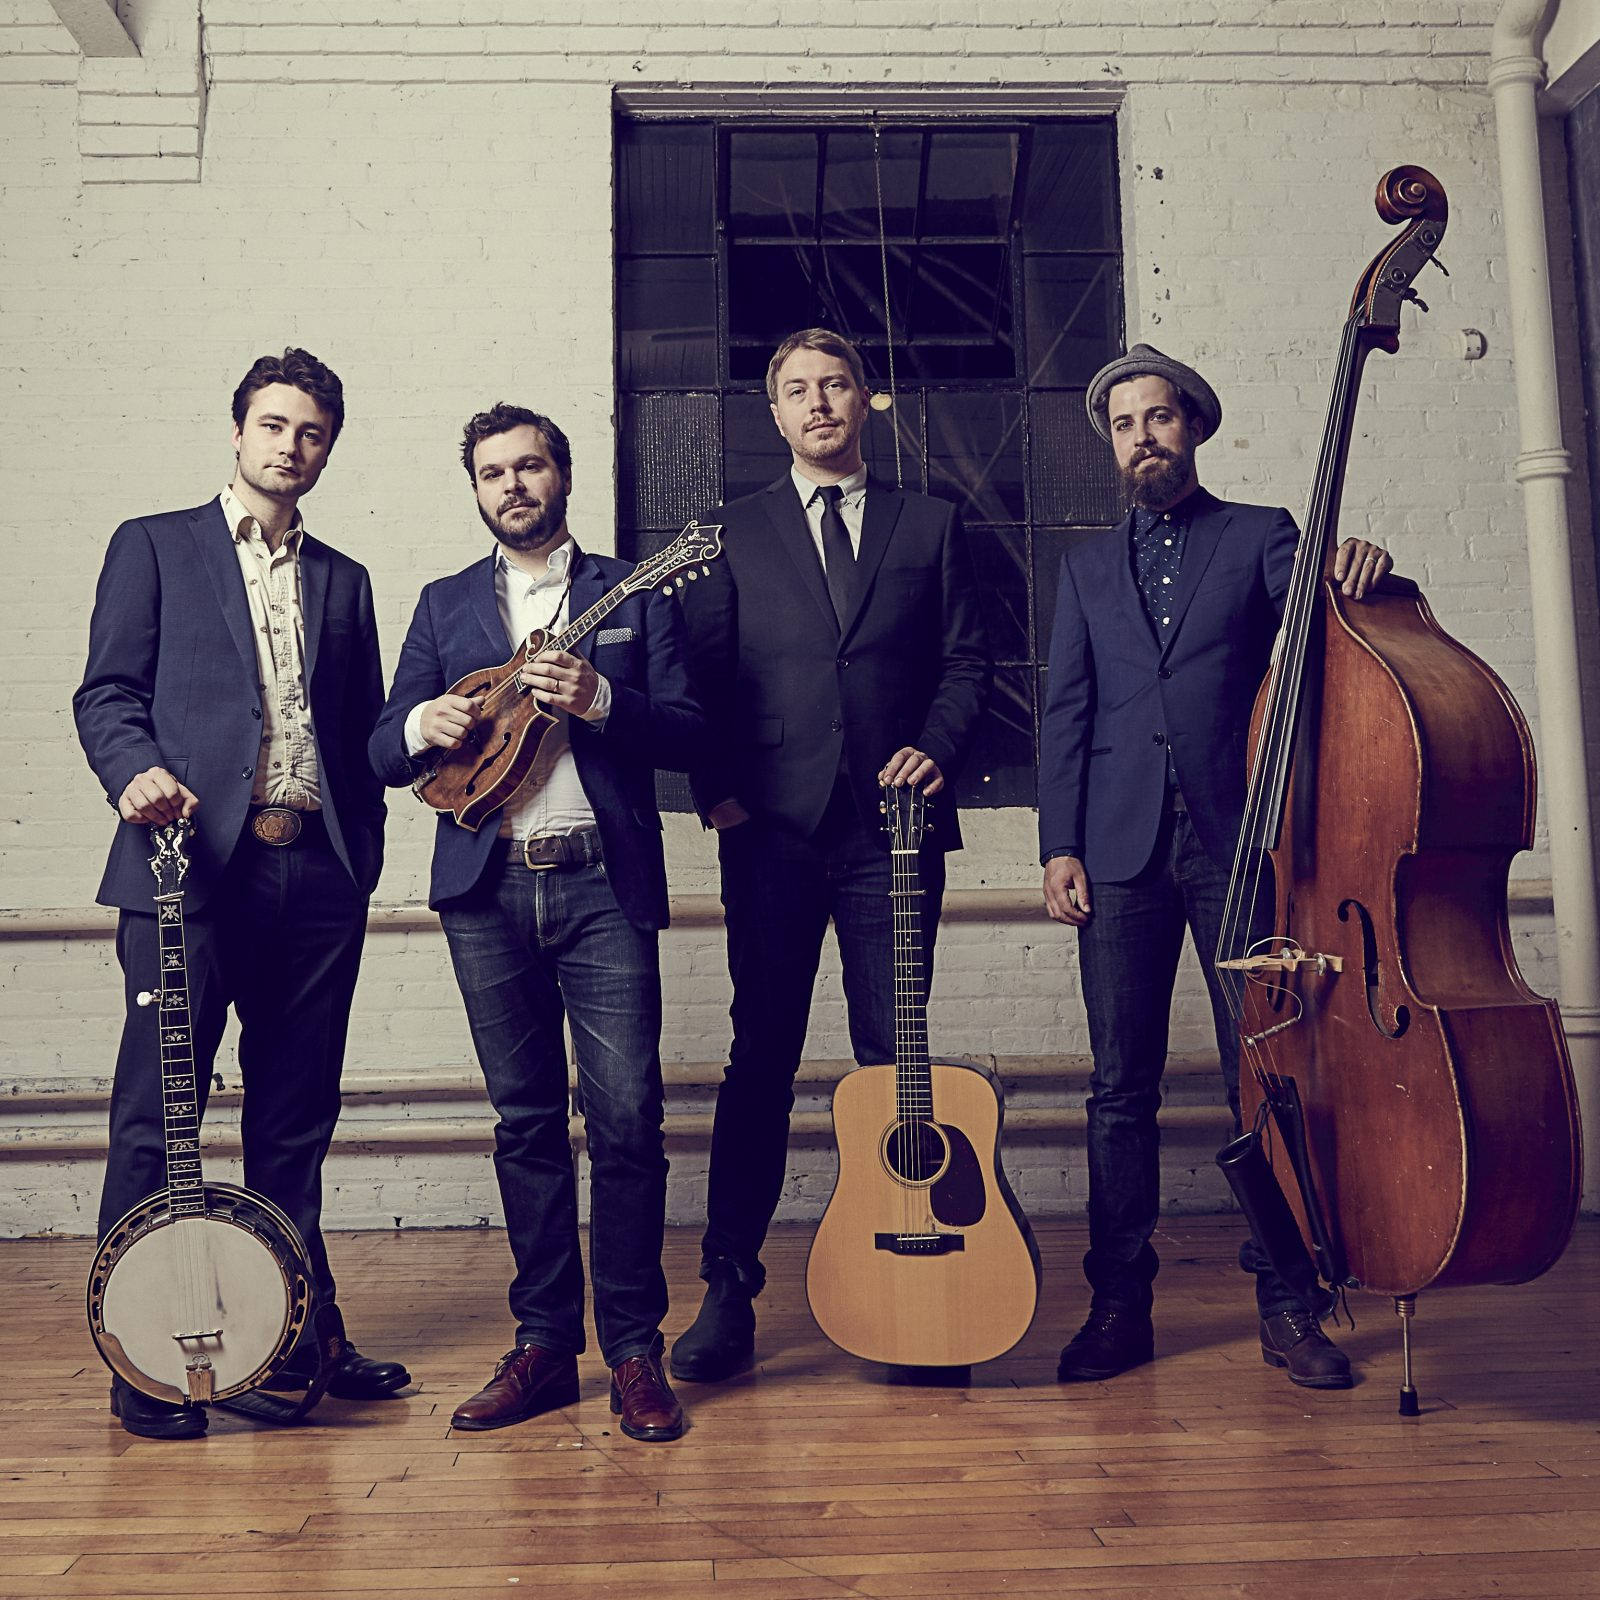 Slocan Ramblers bring bluegrass vibes to Aultsville Theatre